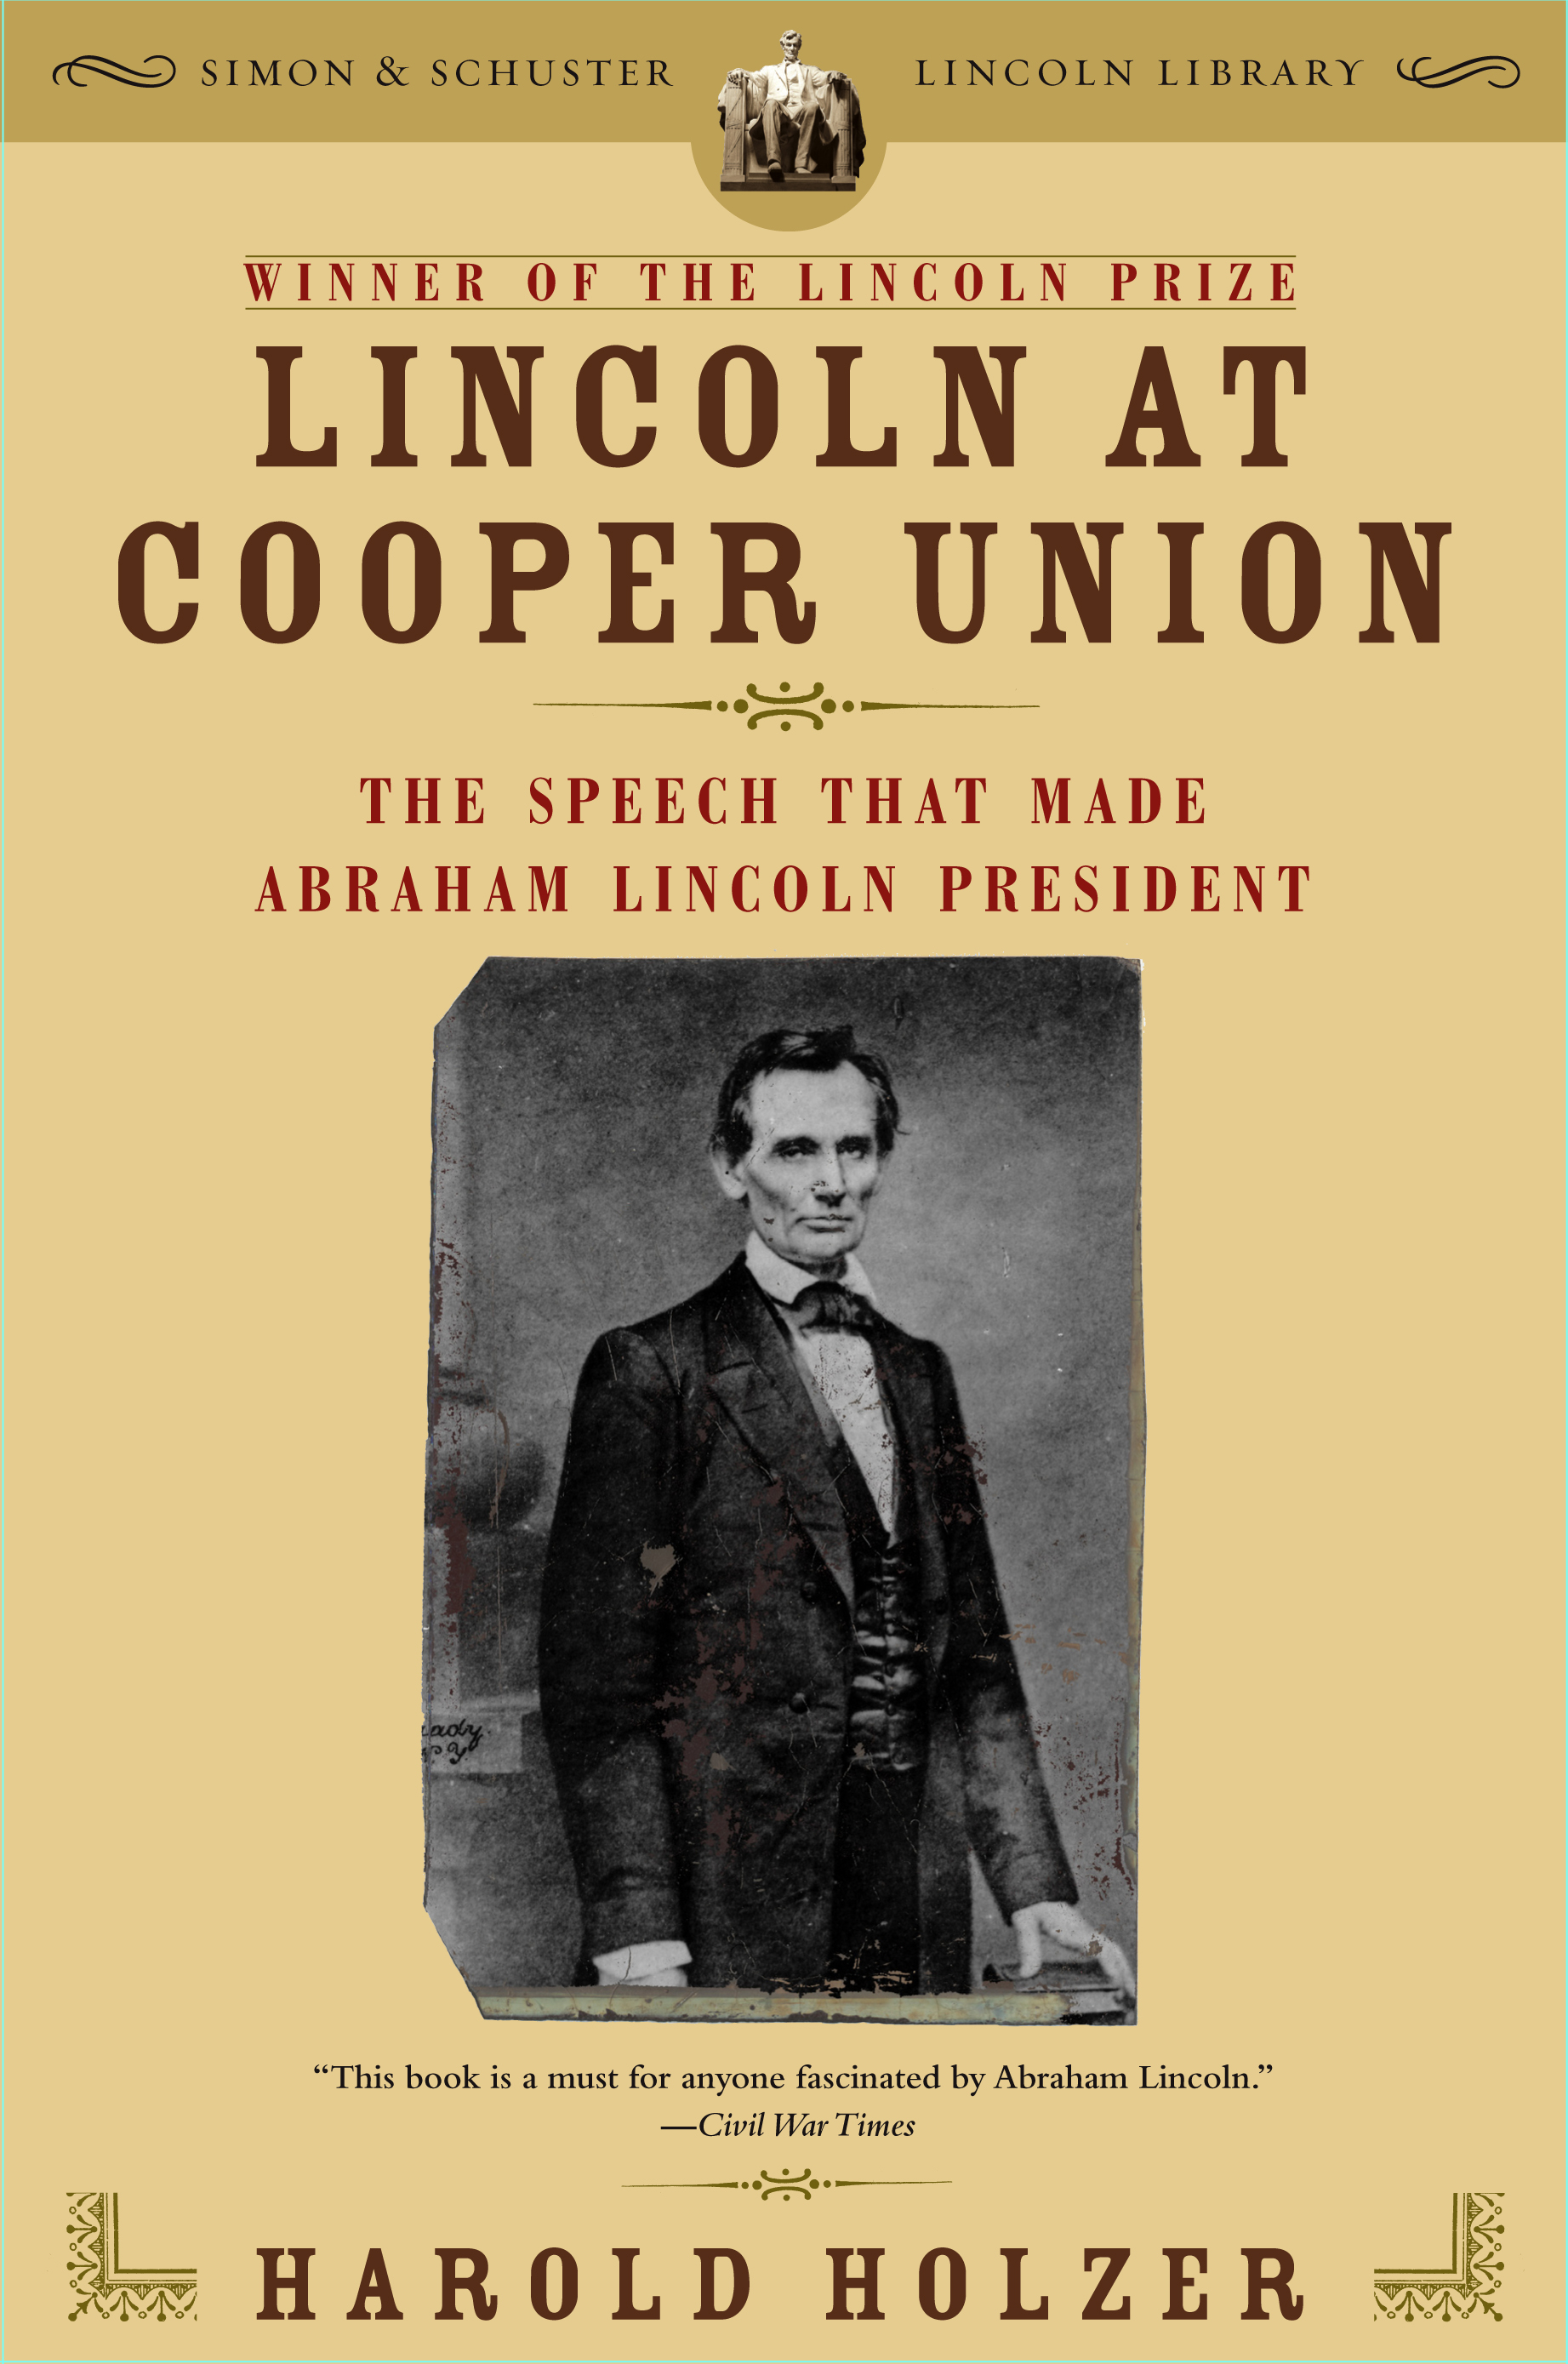 Lincoln at Cooper Union | Book by Harold Holzer | Official Publisher ...